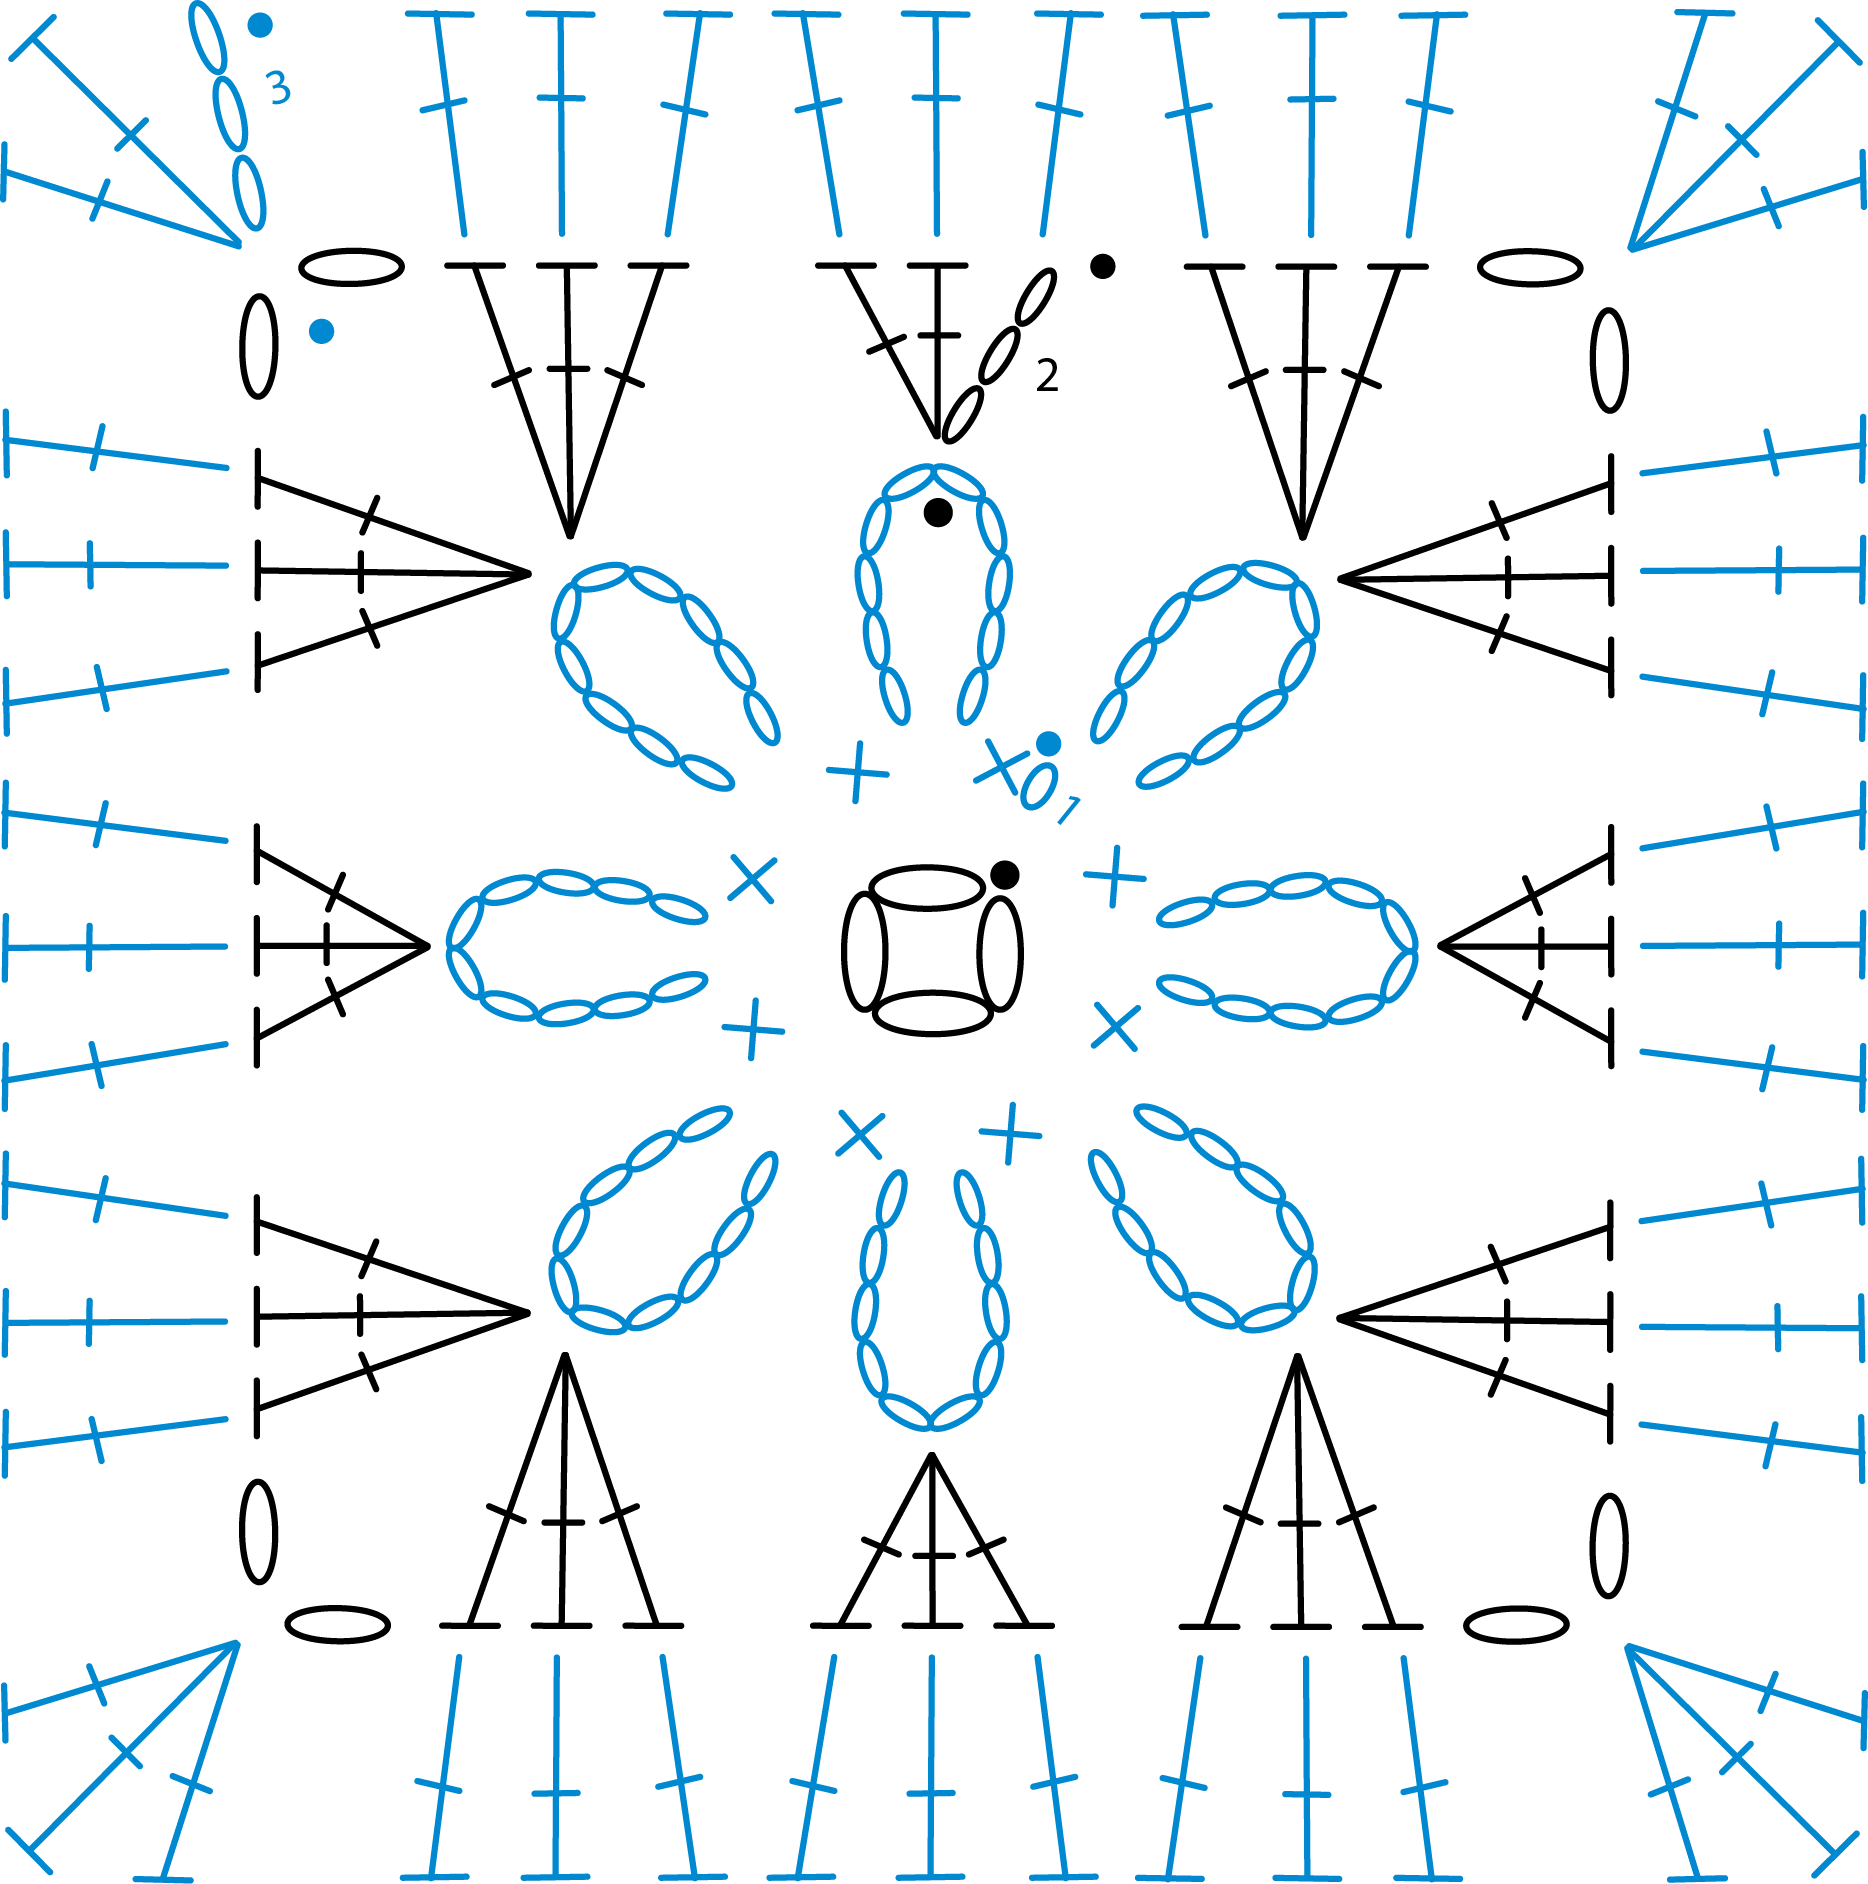 diagram for granny square crochet stitch ge kv2c multifunction meter fitzall wiring patterns simply